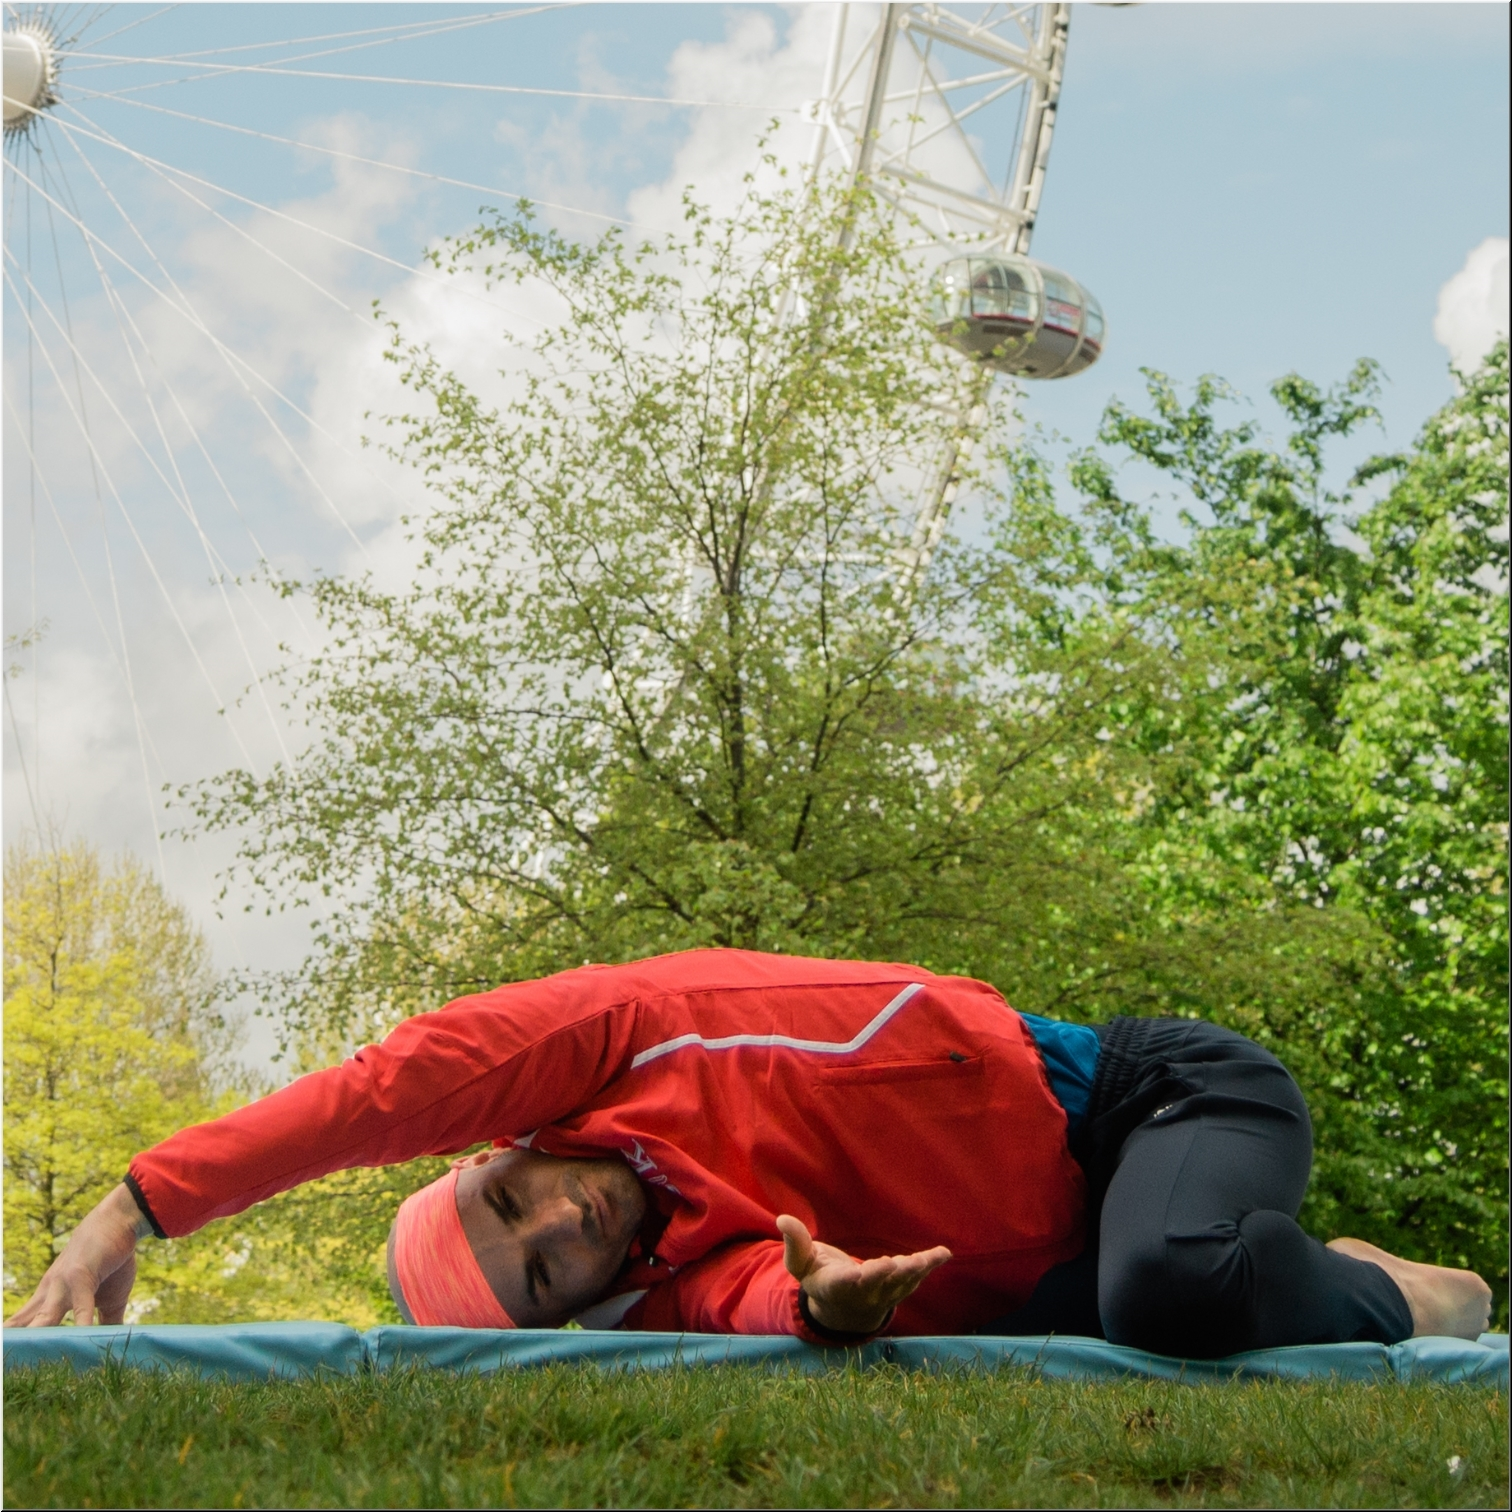 personal yoga lessons in london